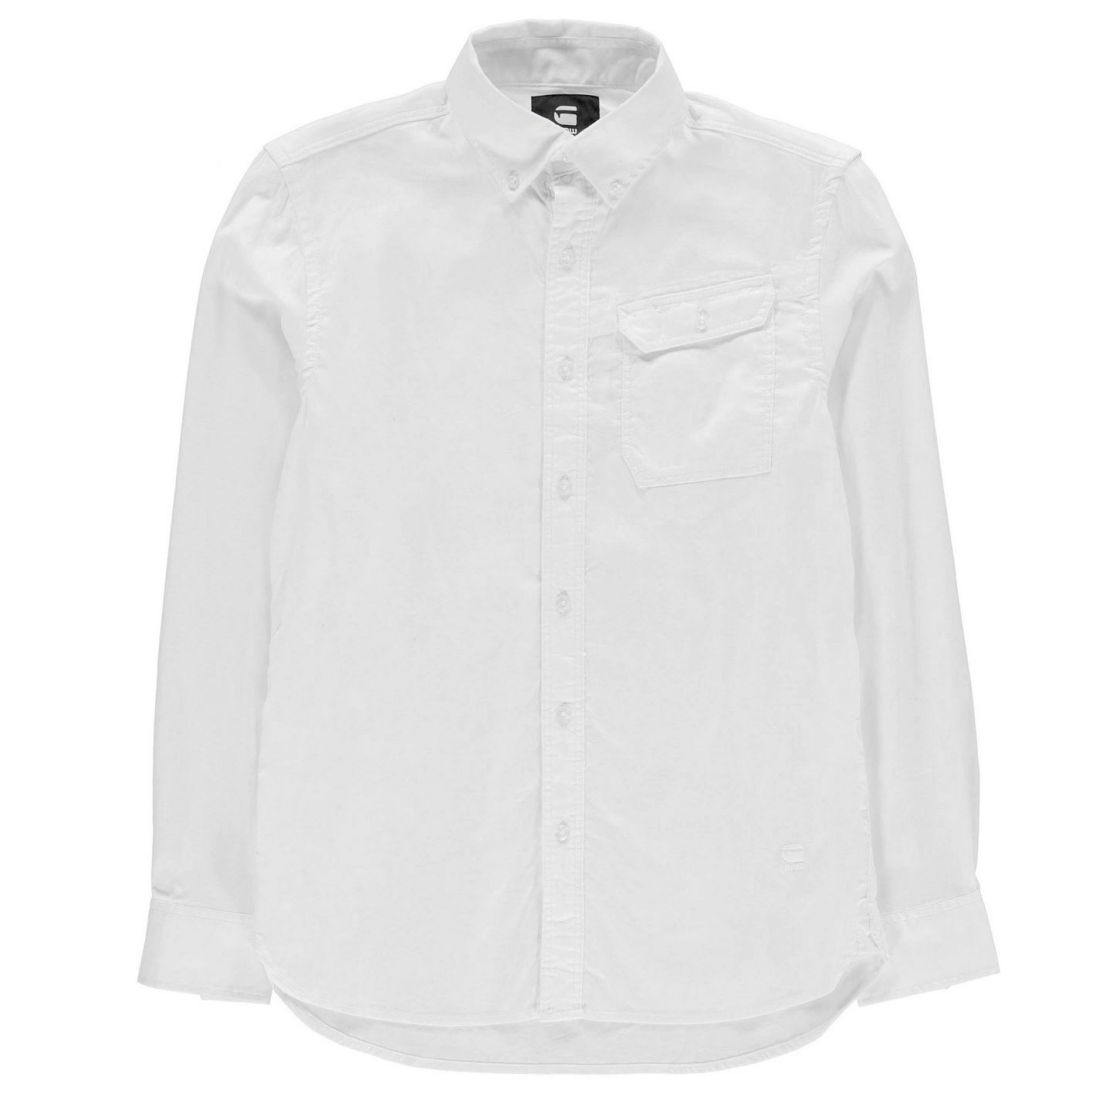 89eecb3872 Details about G Star Mens Oxford Button Down Long Sleeve Shirt Casual Tonal  Stitching Fold